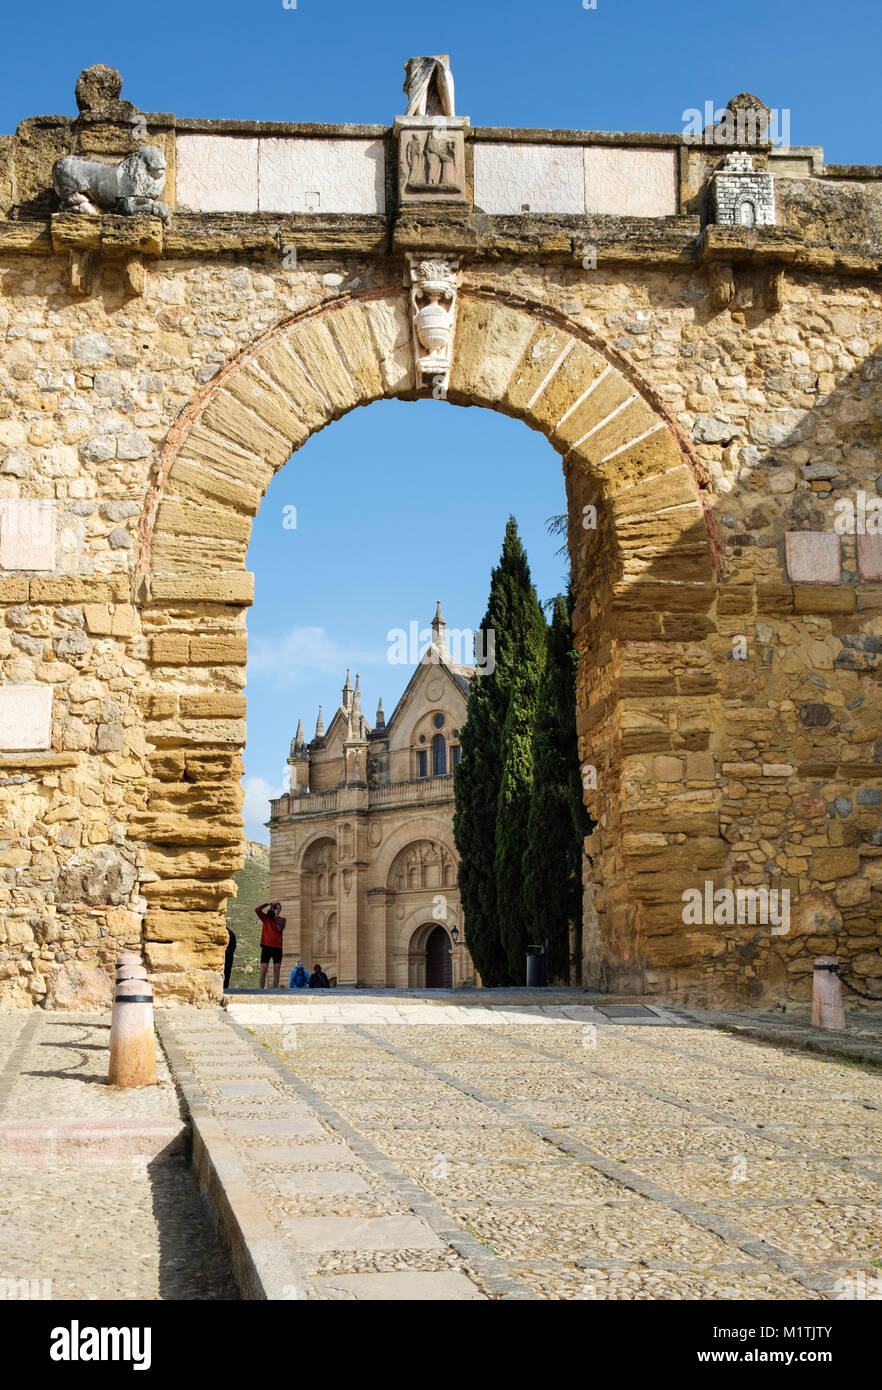 Giants Arch (Arco de los Gigantes] to the Royal Collegiate Church of Santa  María